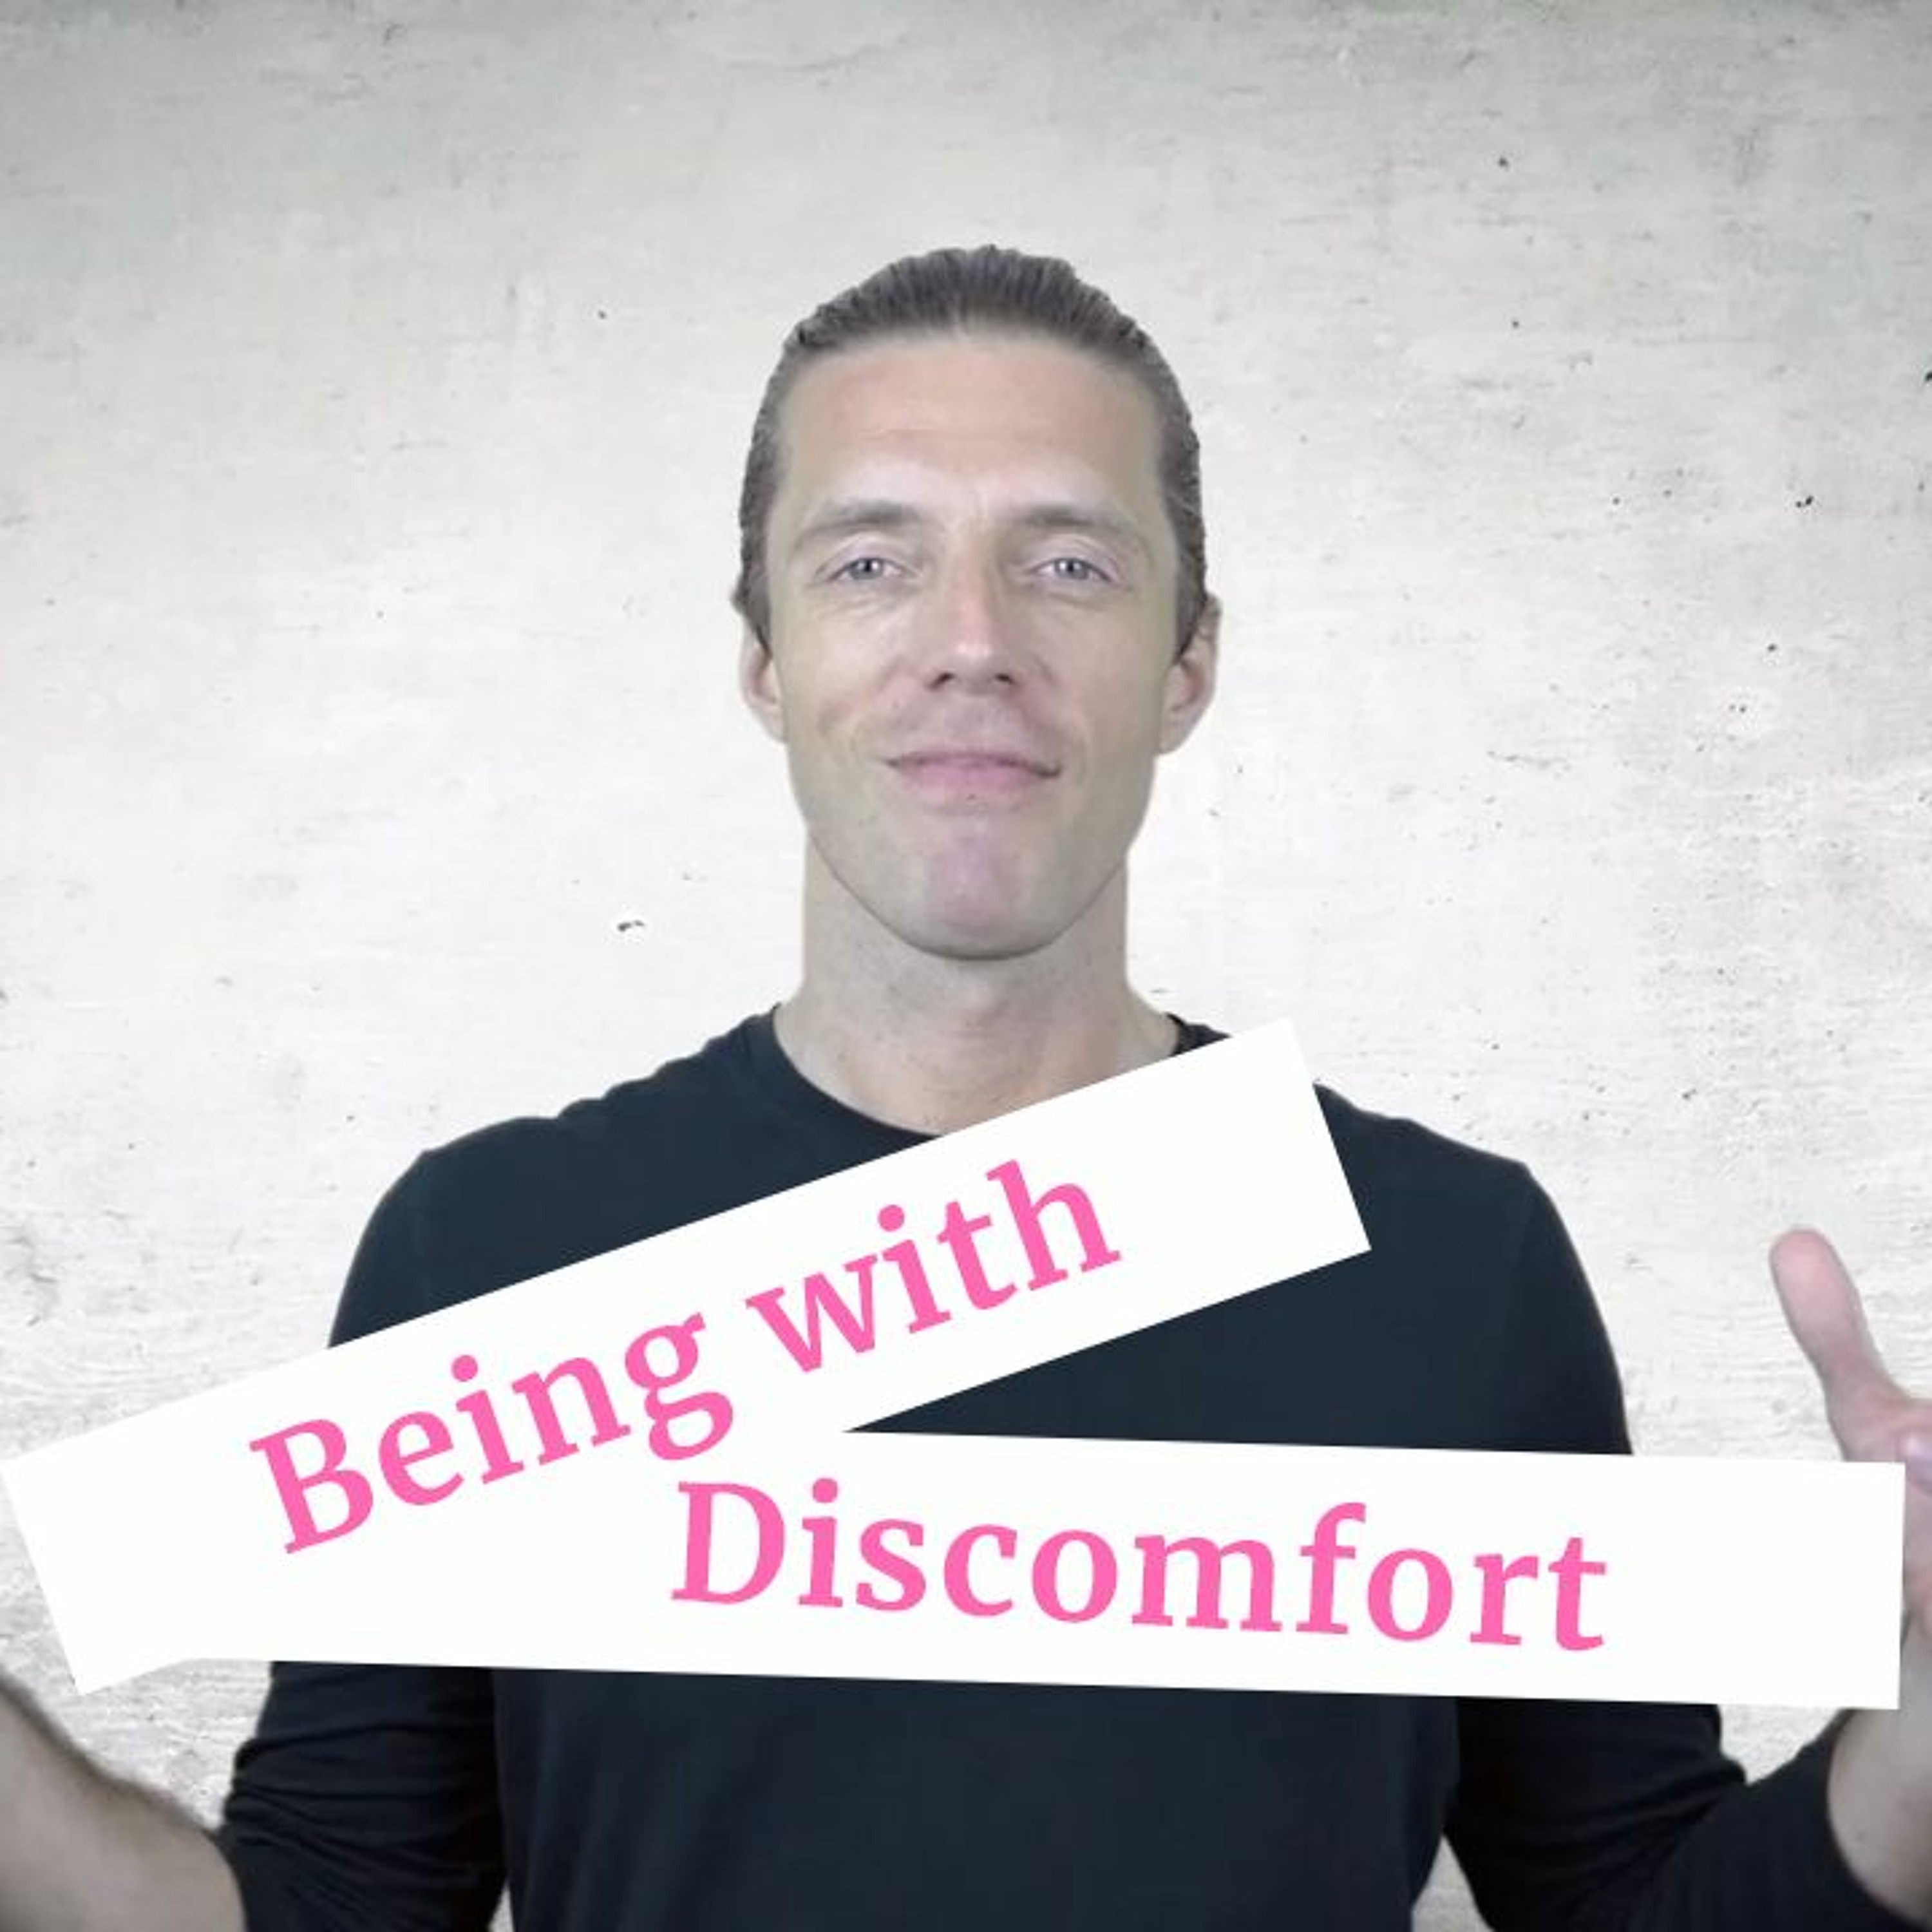 Being With Discomfort